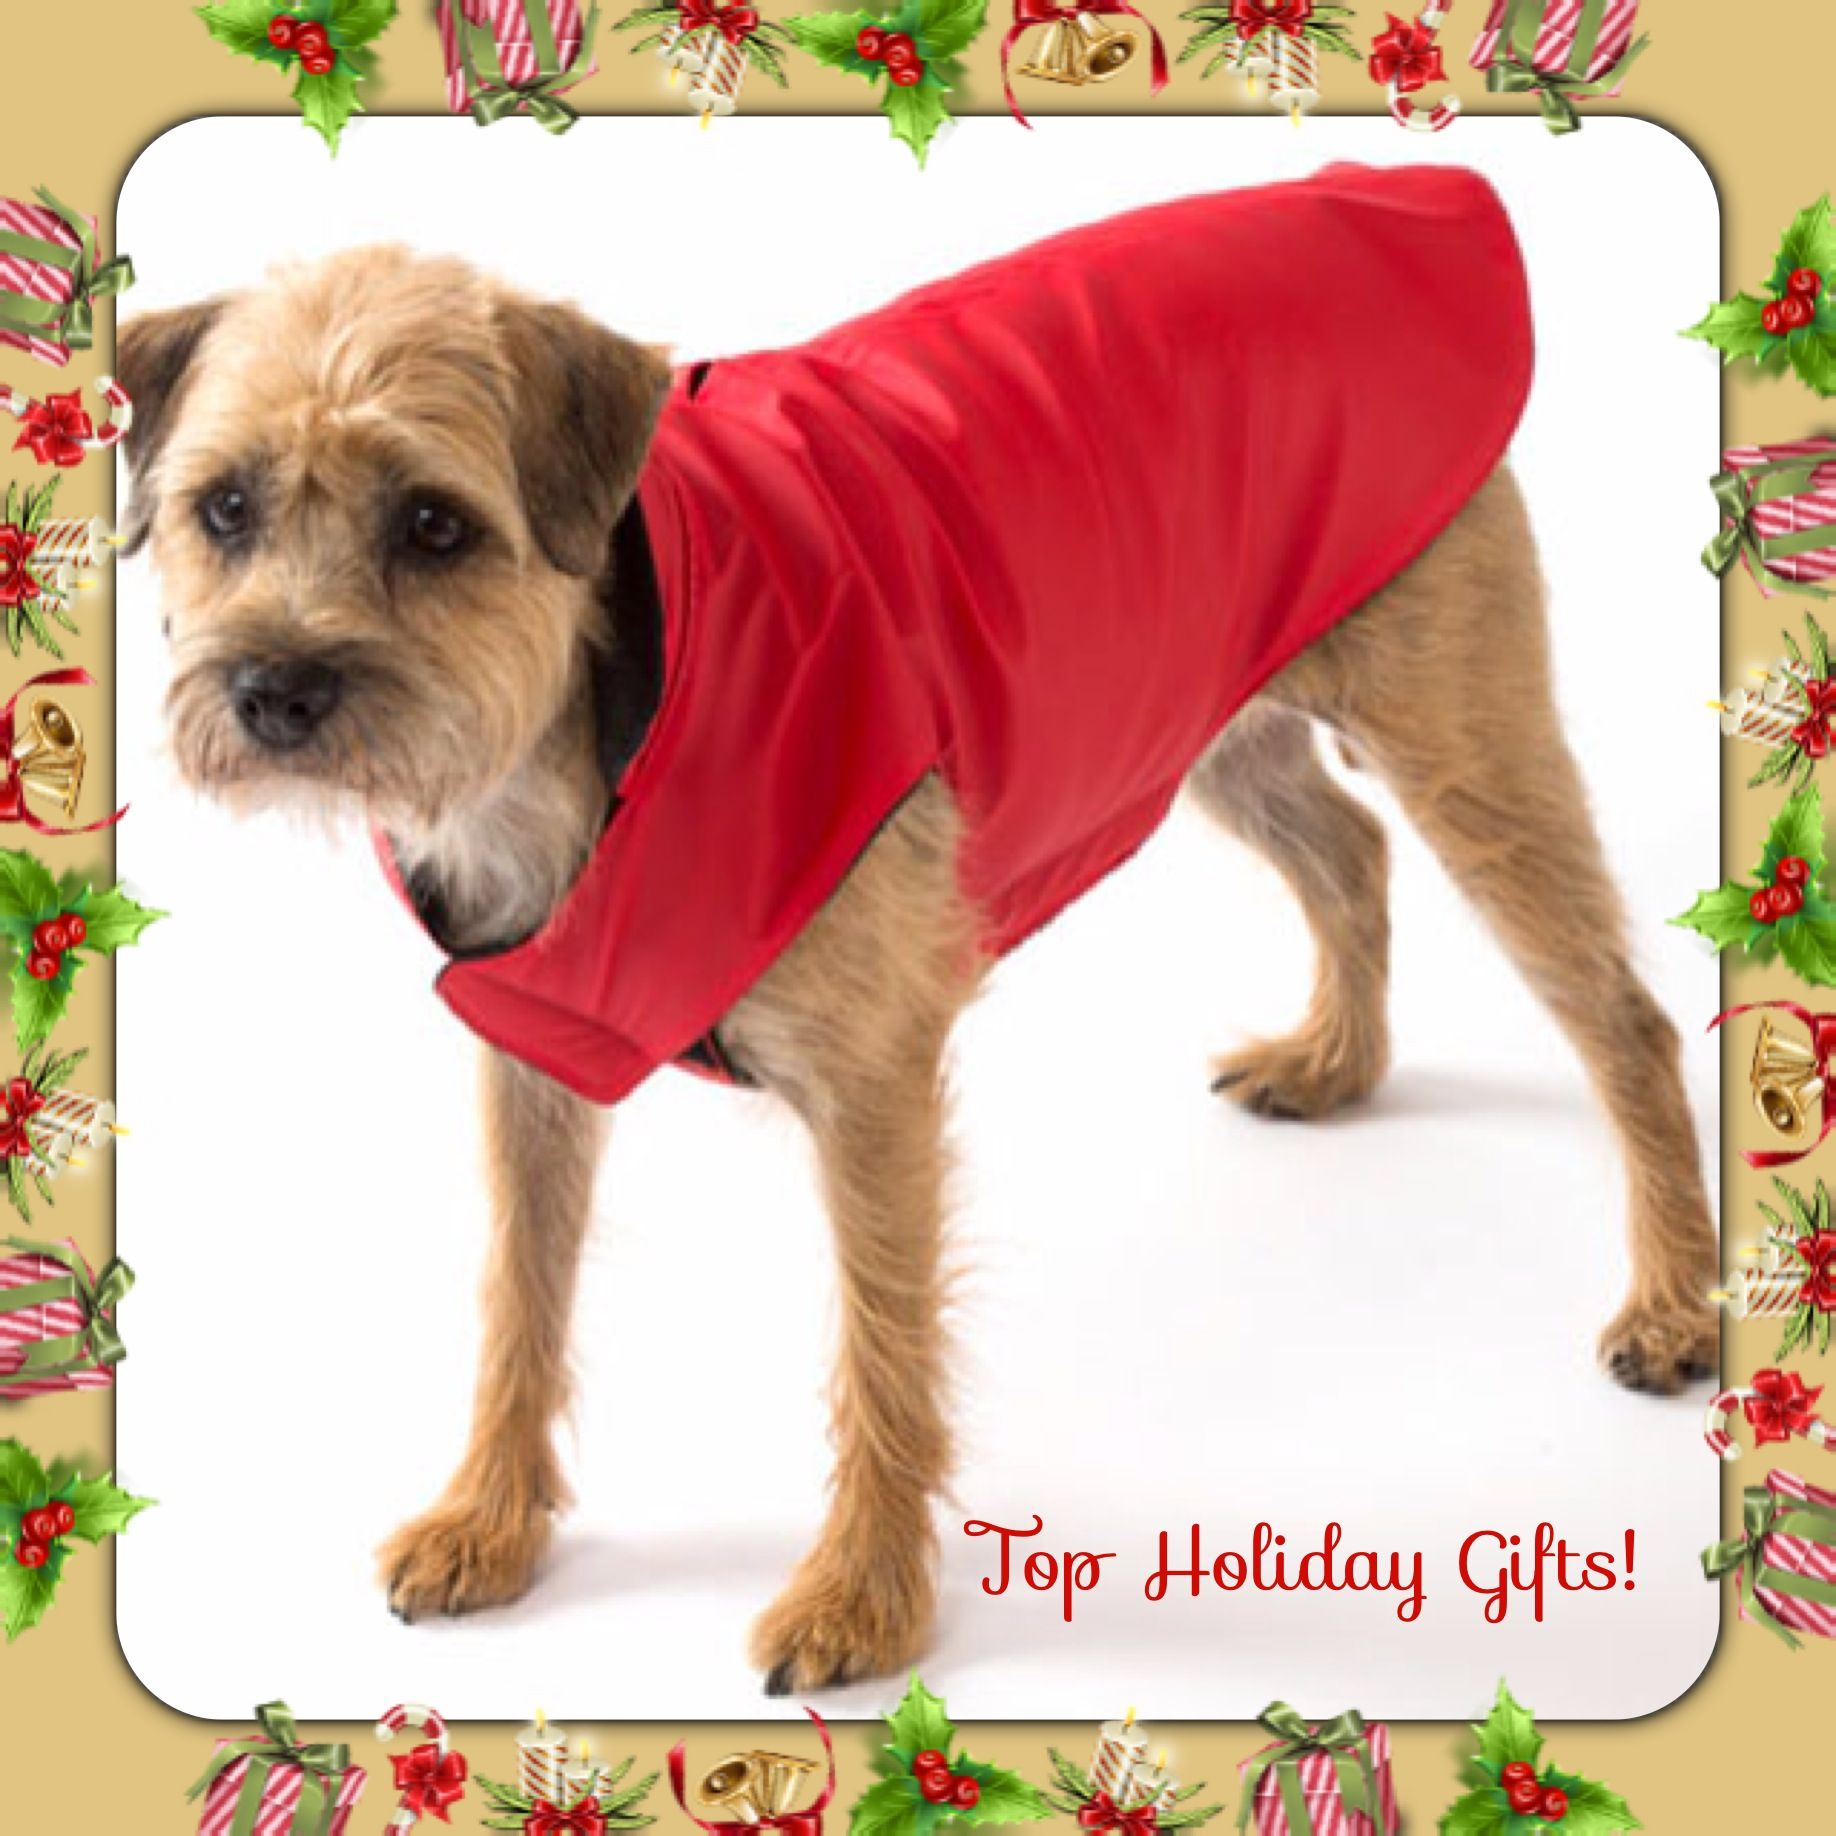 Animal Wrapper Neoprene This Animal Wrapper Will Allow Your Dog To Get Into The Holidays Just Like The Rest Of The Family This To Dog Coats Nyc Dogs Animals